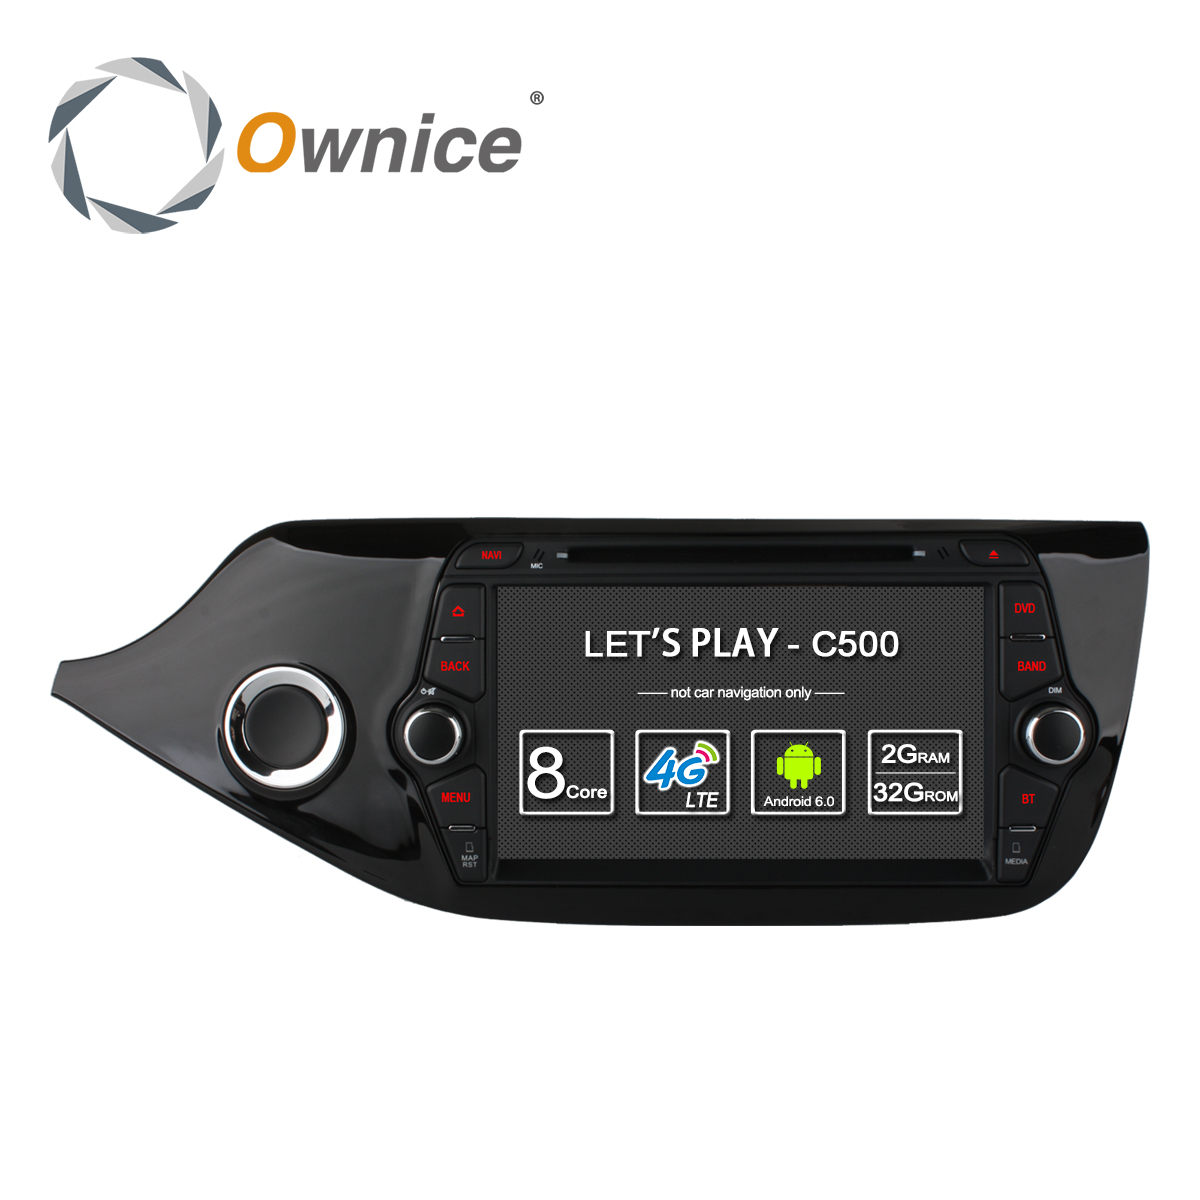 Ownice C500 4g SIM LTE Octa 8 Core Android 6.0 Pour Kia CEED 2013-2015 Voiture Lecteur DVD GPS Navi Radio WIFI 4g BT 2 gb RAM 32g ROM